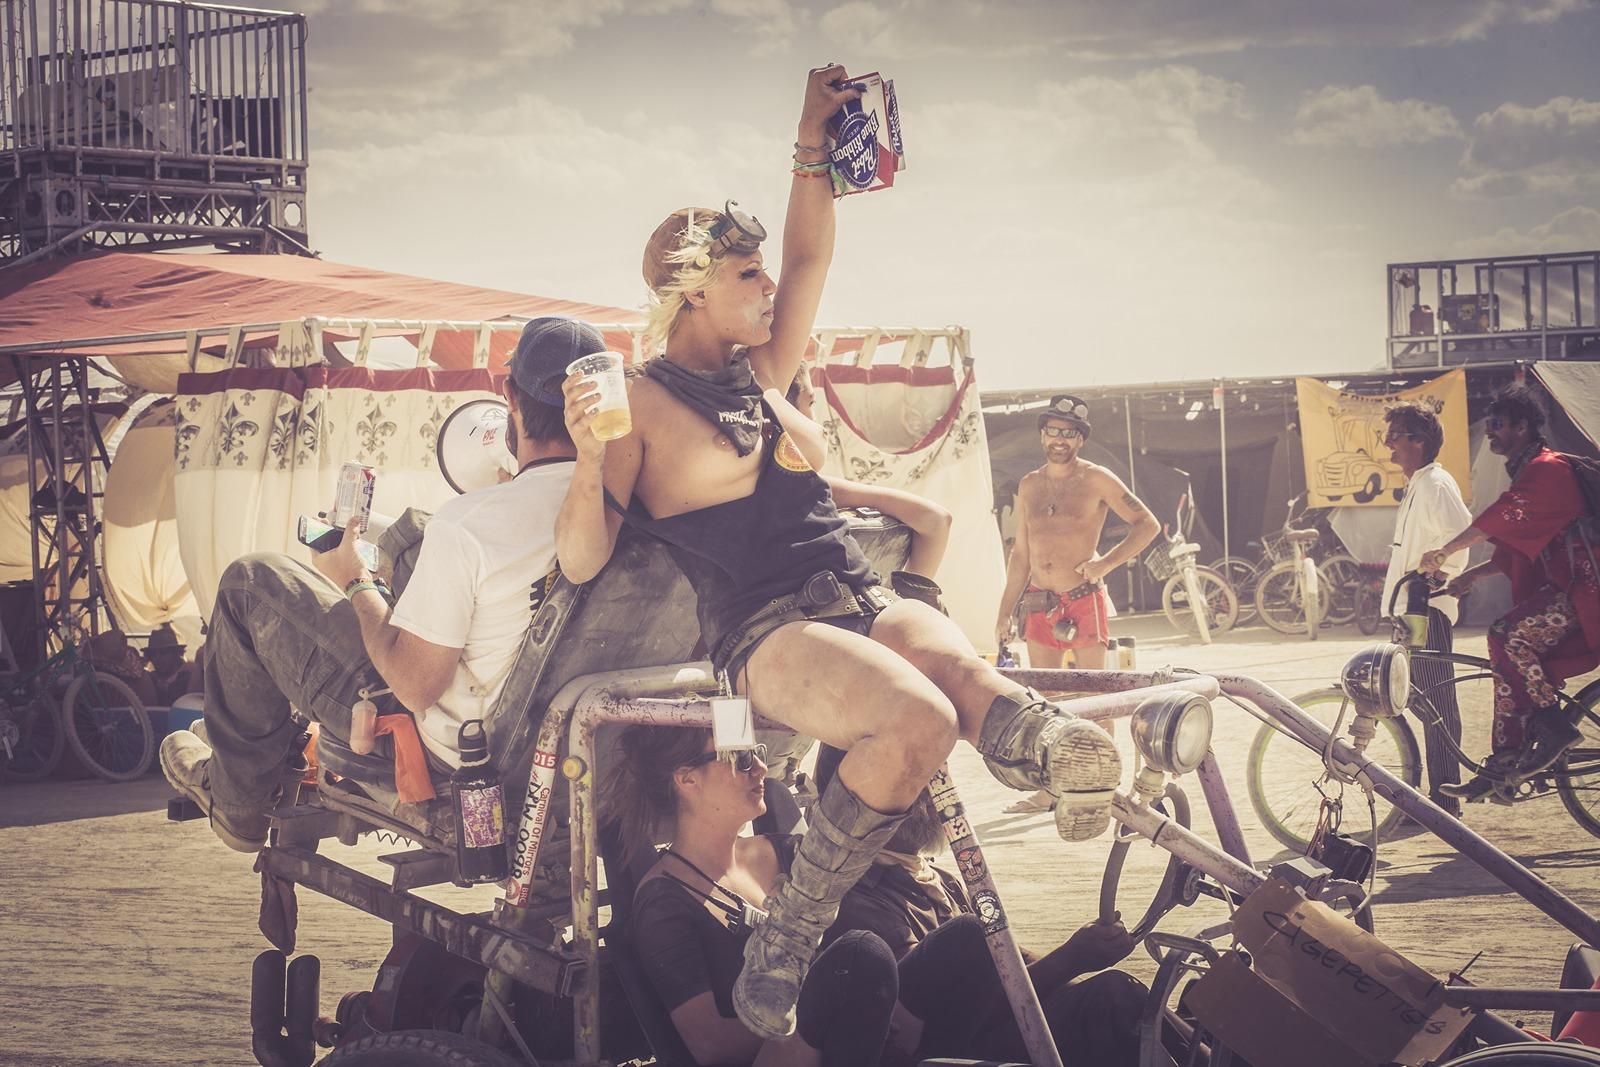 Burning Man - I love beer